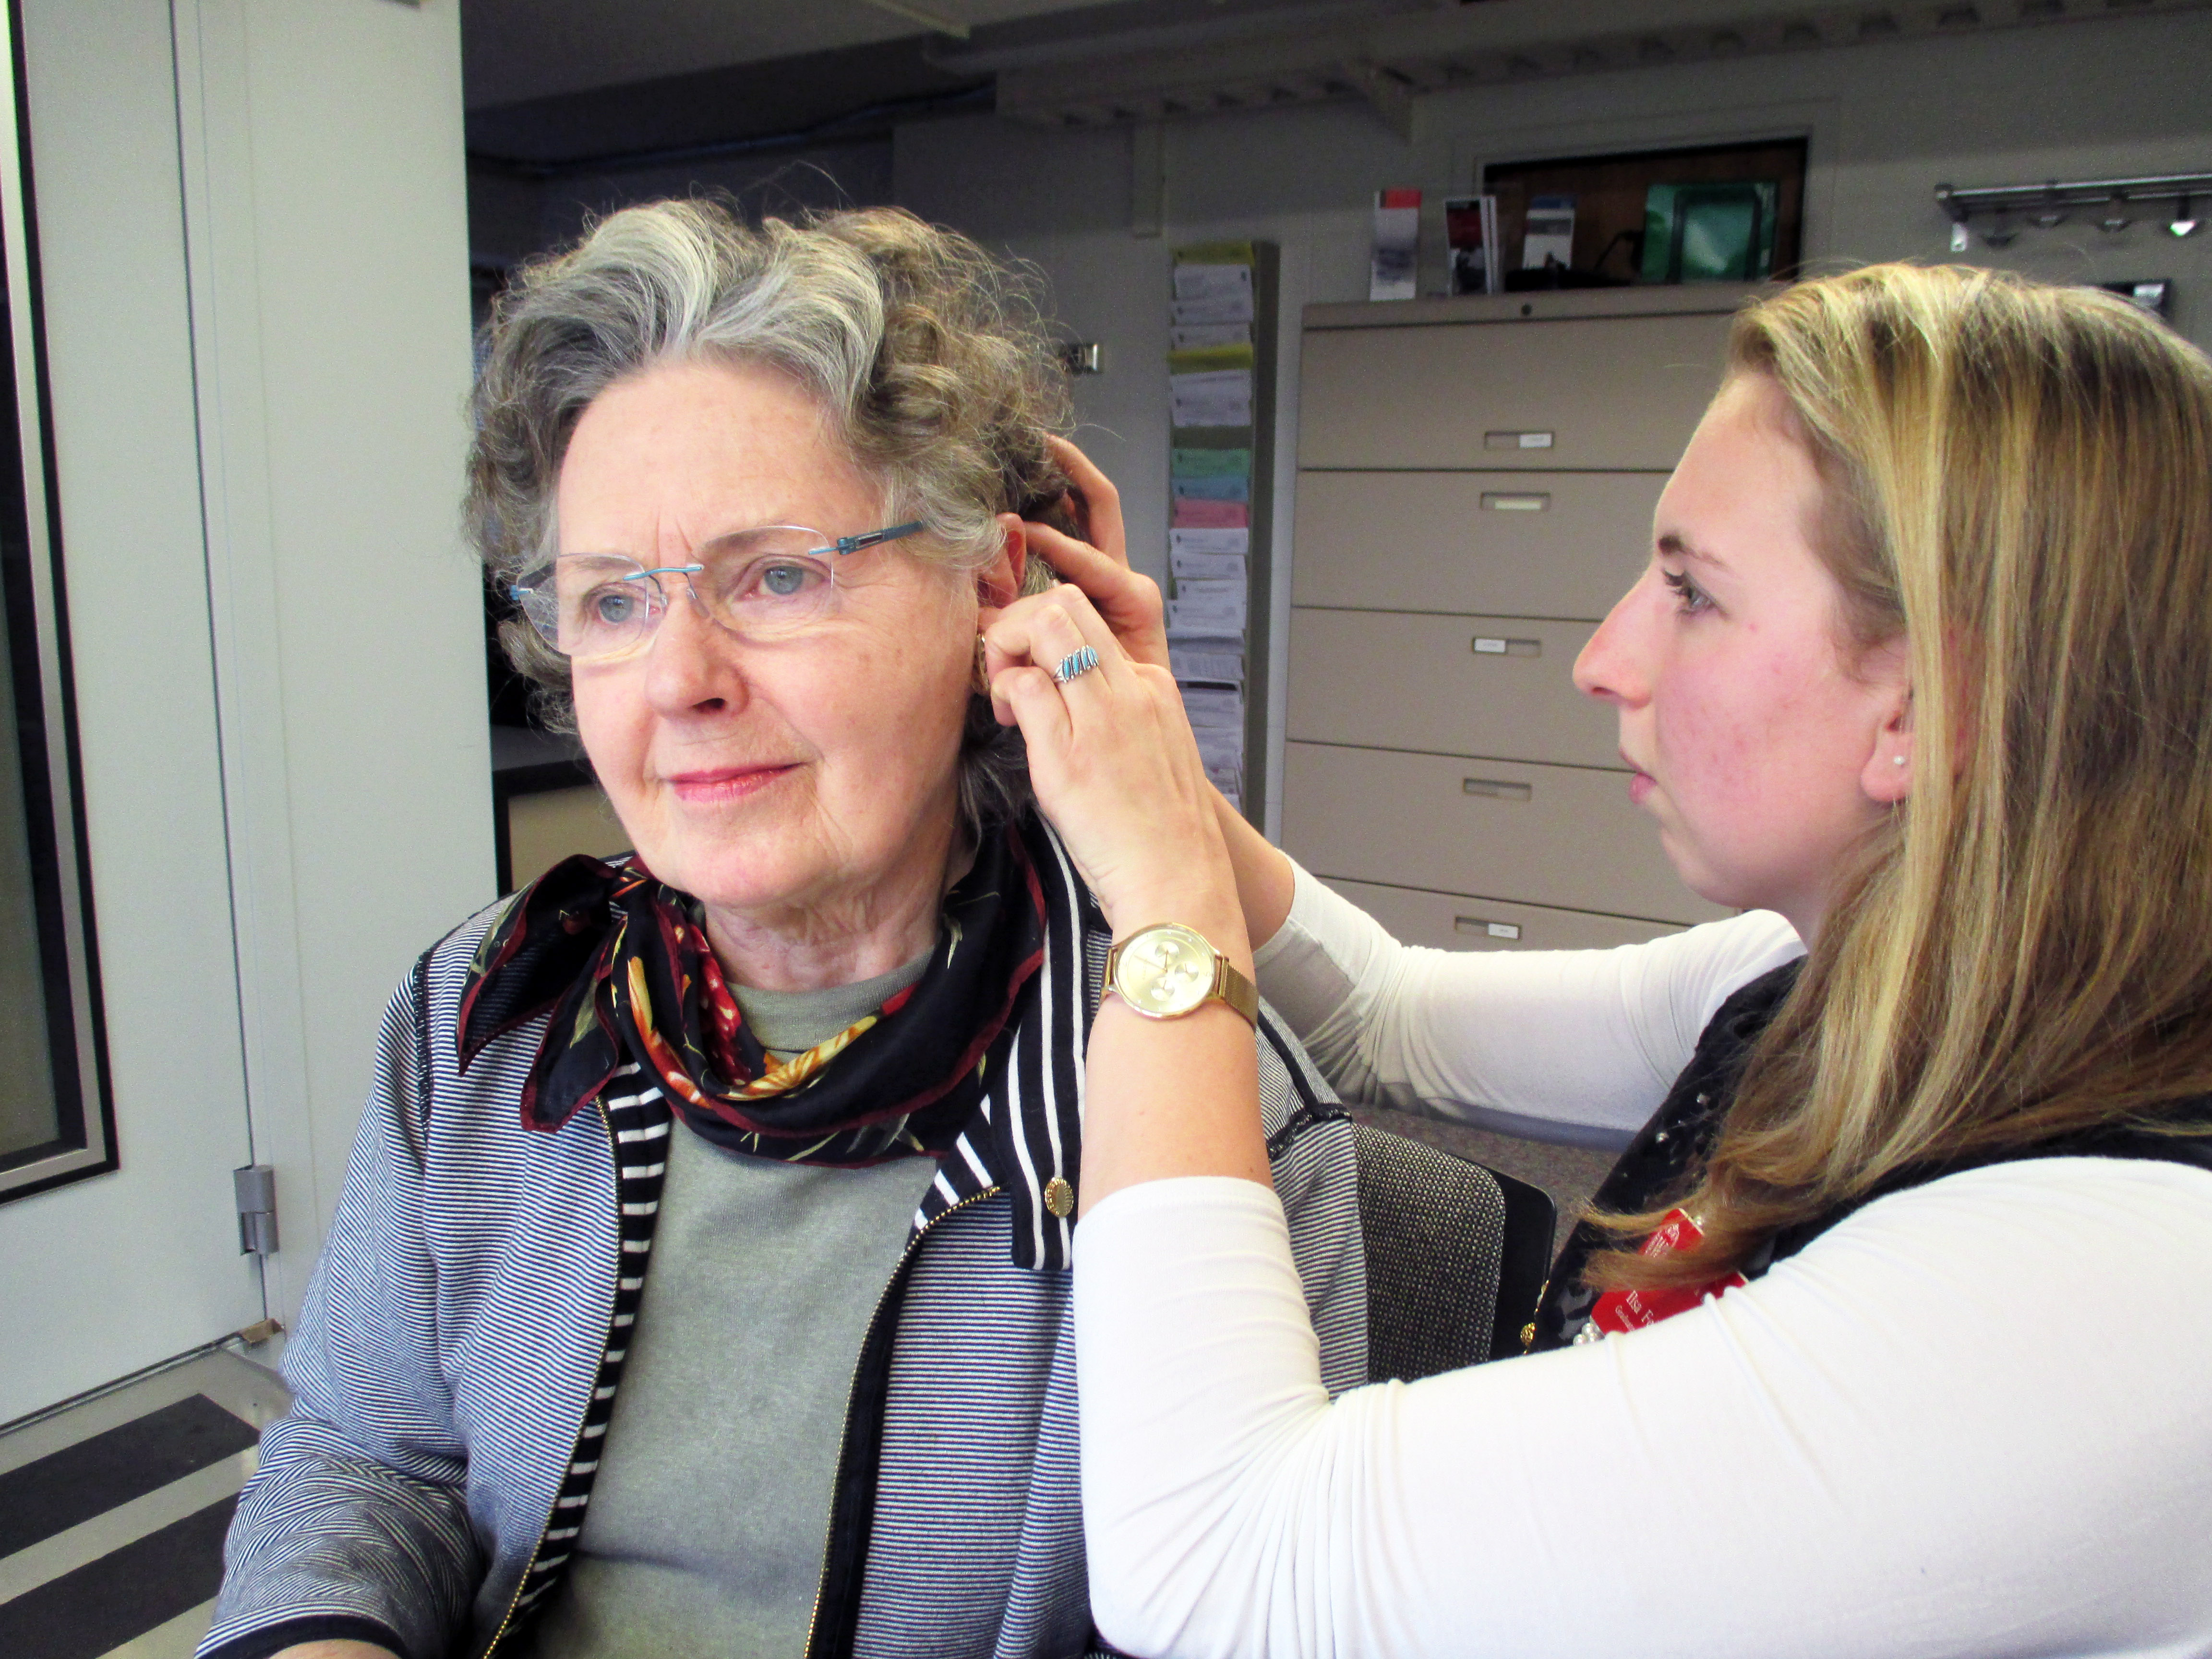 Audiology graduate student clinician fits an adult patient with a hearing aid.